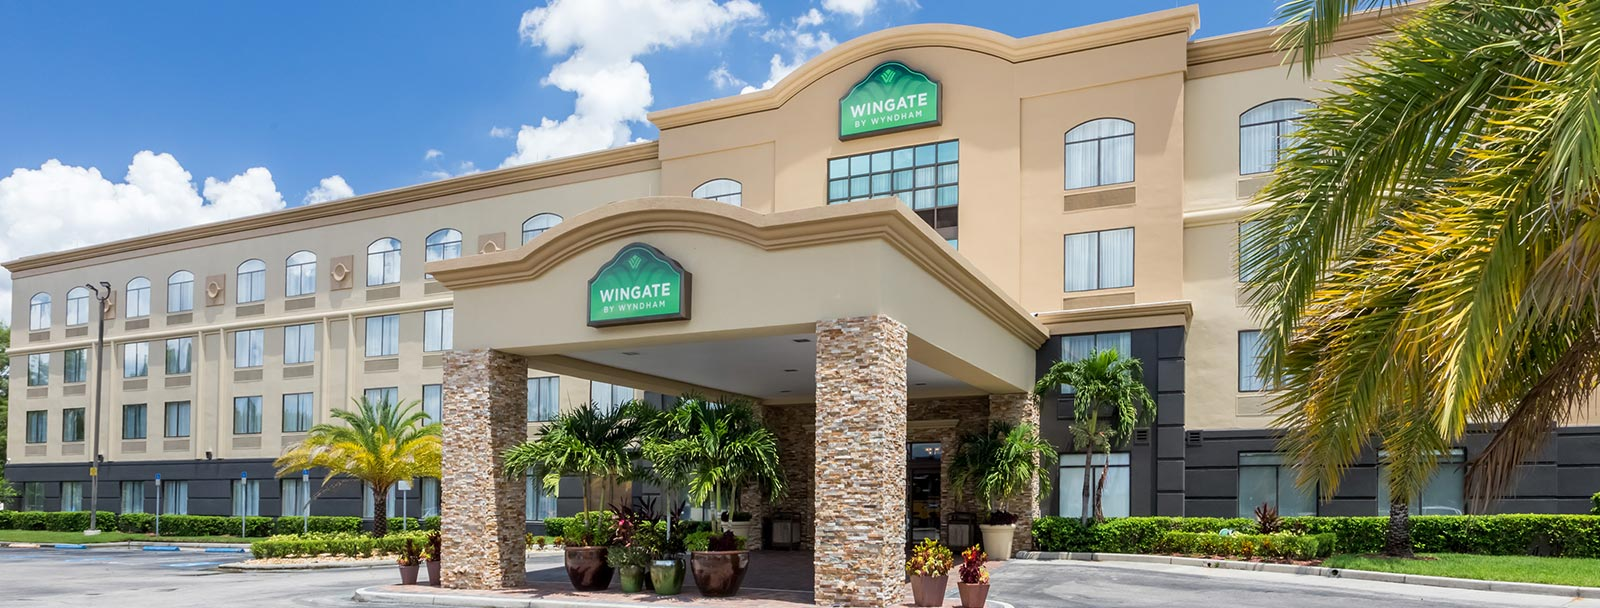 Wingate by Wyndham Universal Studios & Convention Center, Orlando Florida